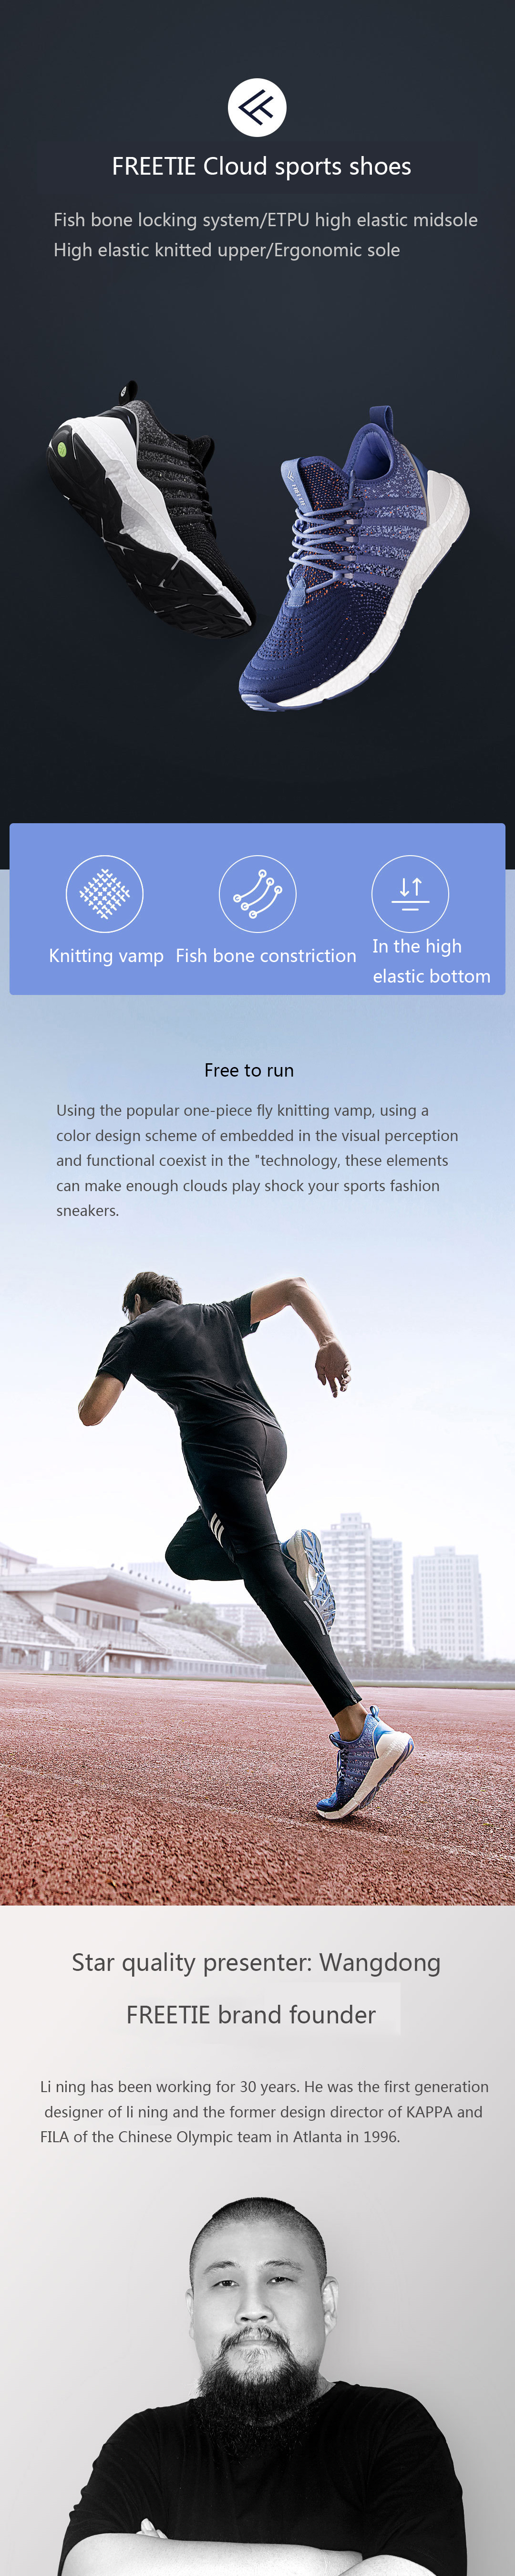 FREETIE Men Lightweight BreatheFreely Cloud Running Shoes Sport Shoes Sneakers from xiaomi youpin